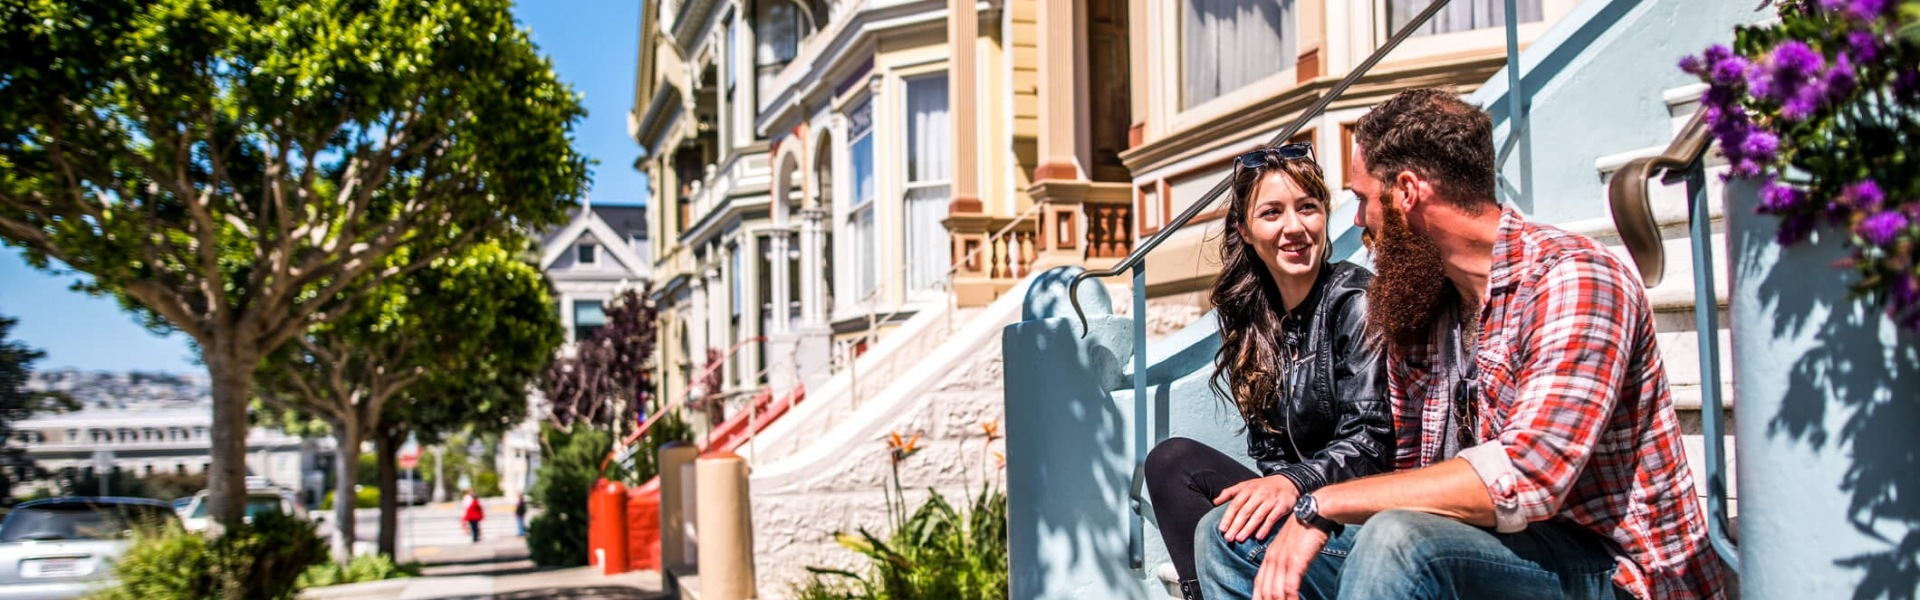 couple sits on stoop of painted lady home with corgi